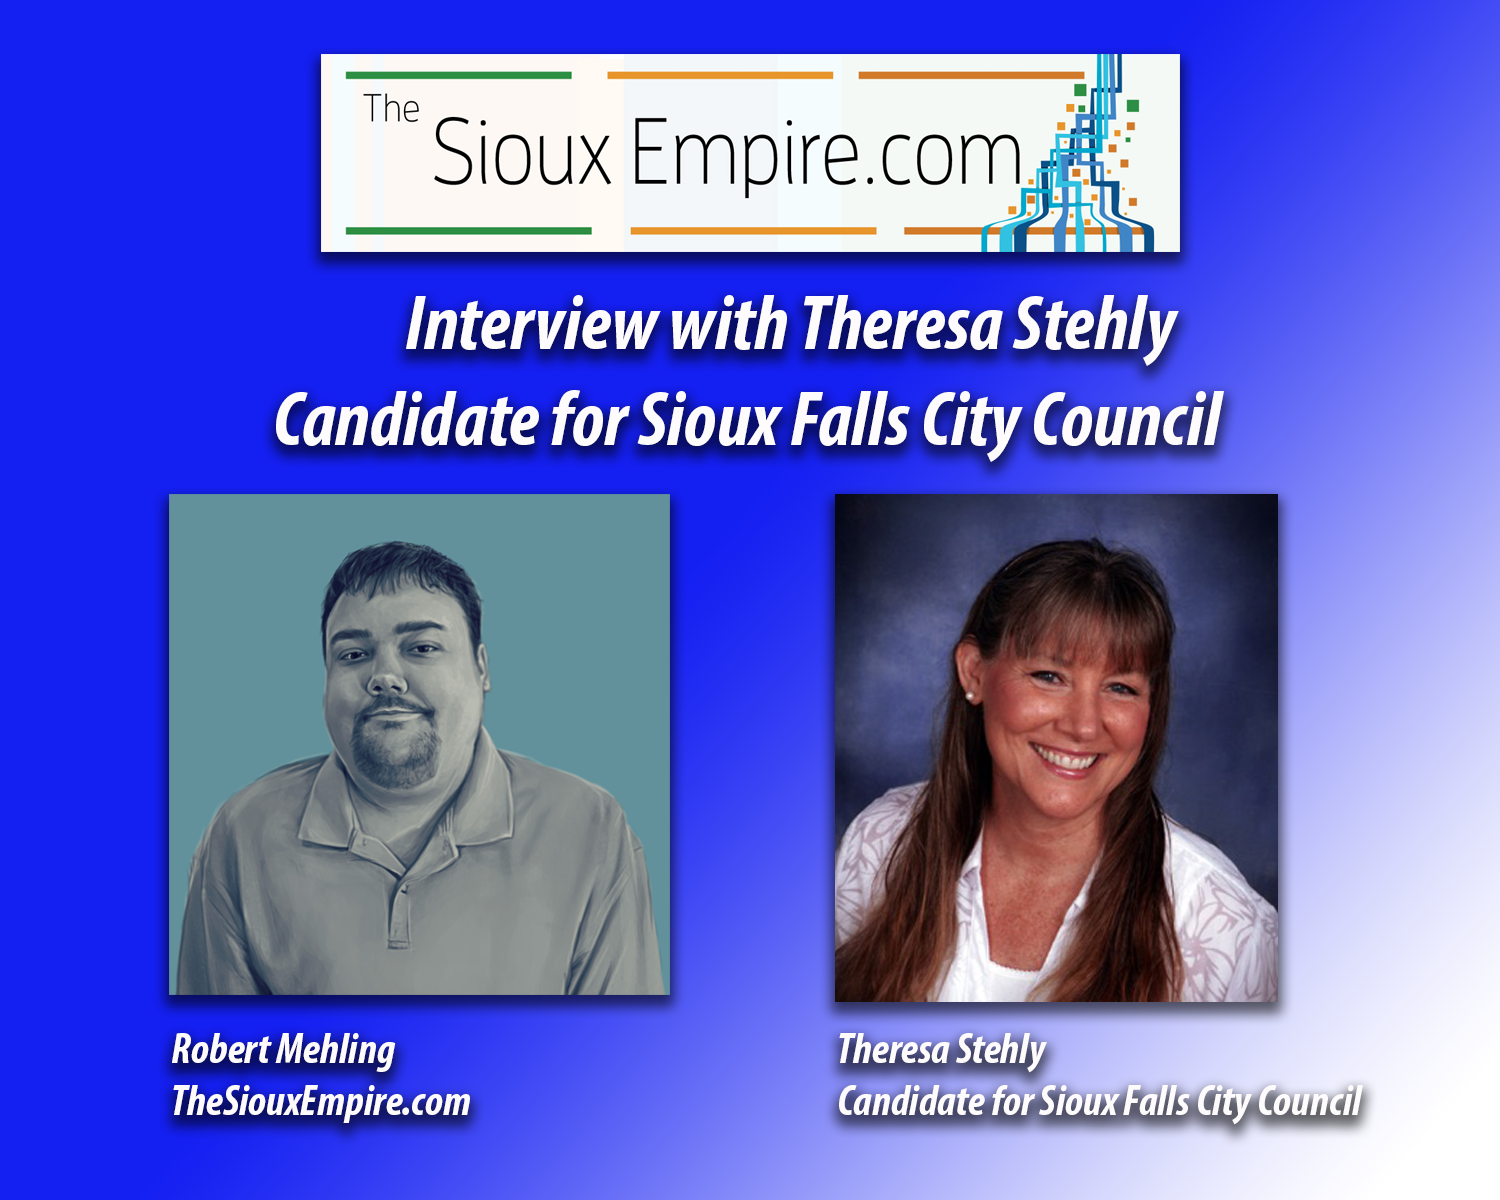 TheSiouxEmpire.com - The Sioux Empire Podcast Interview with Sioux Falls City Council Candidate Theresa Stehly